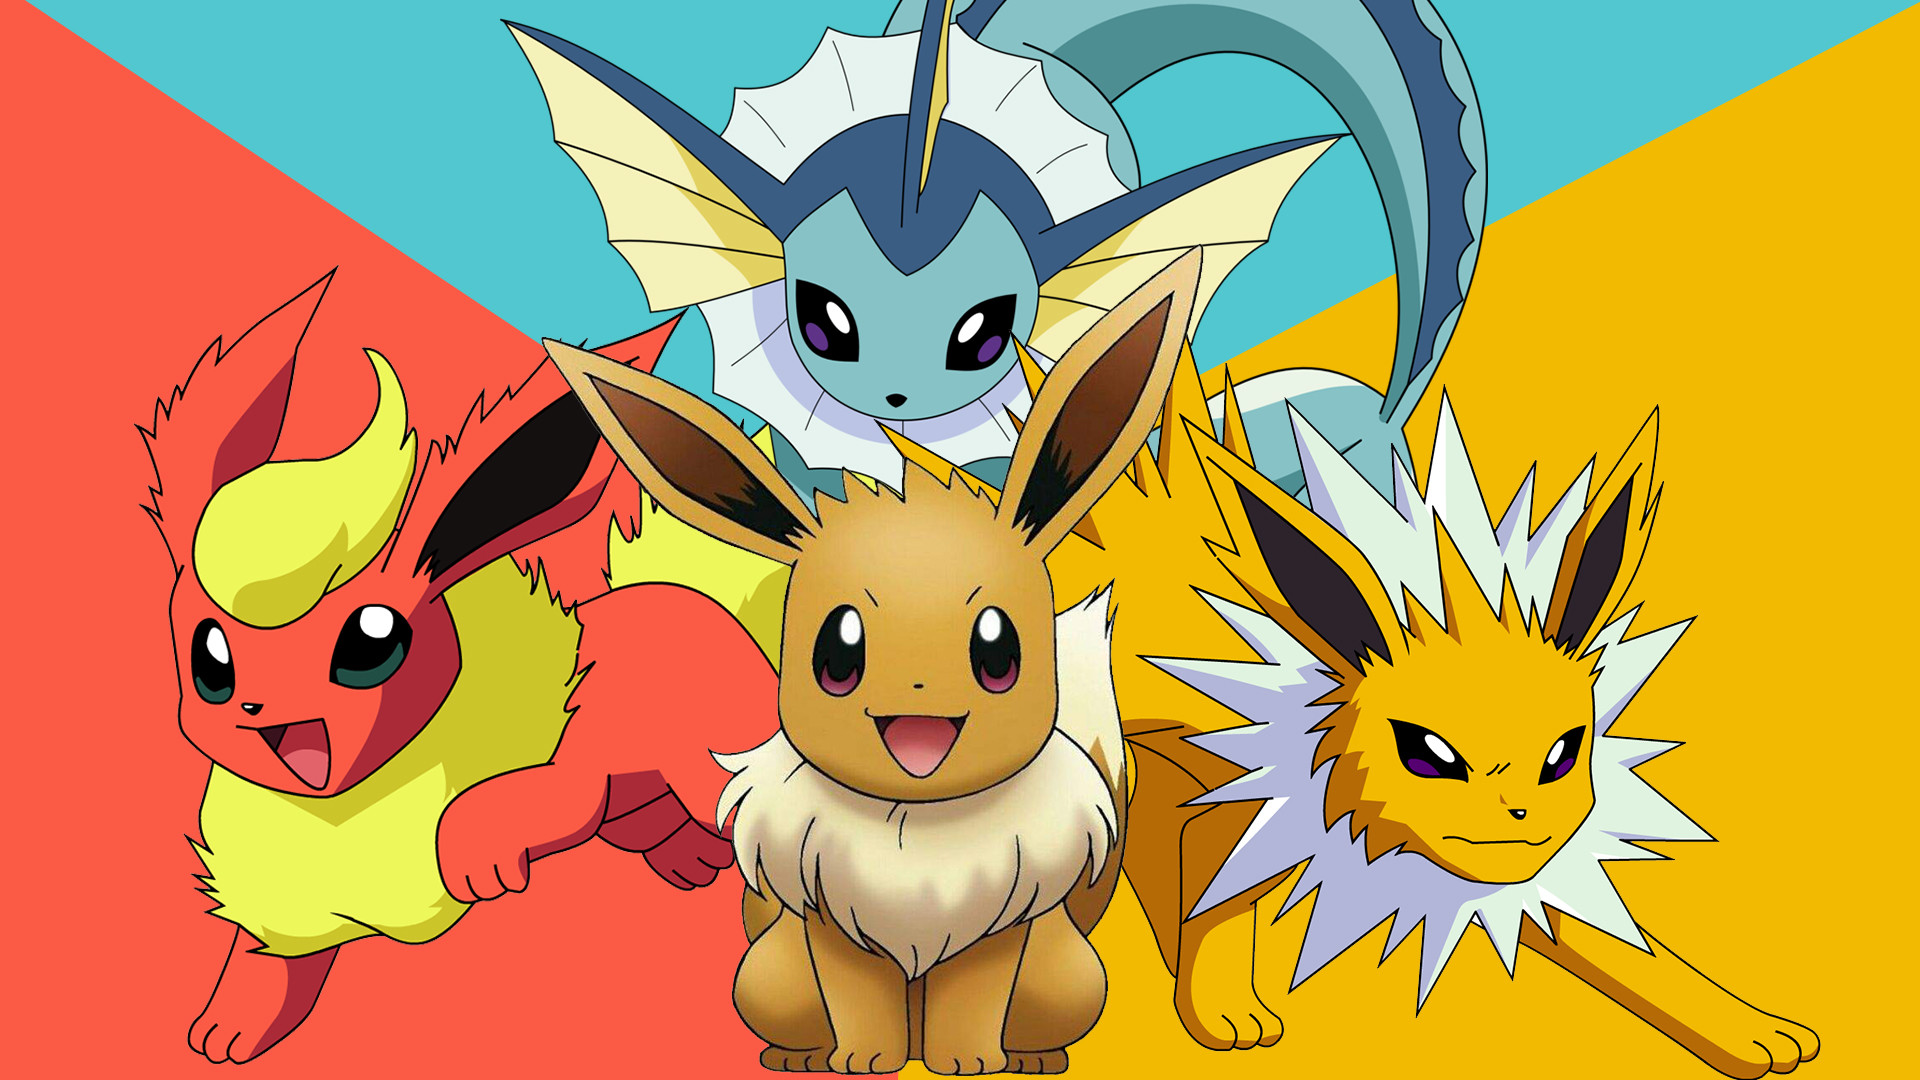 1920x1080 Eevee Pokemon Wallpaper HD #1323